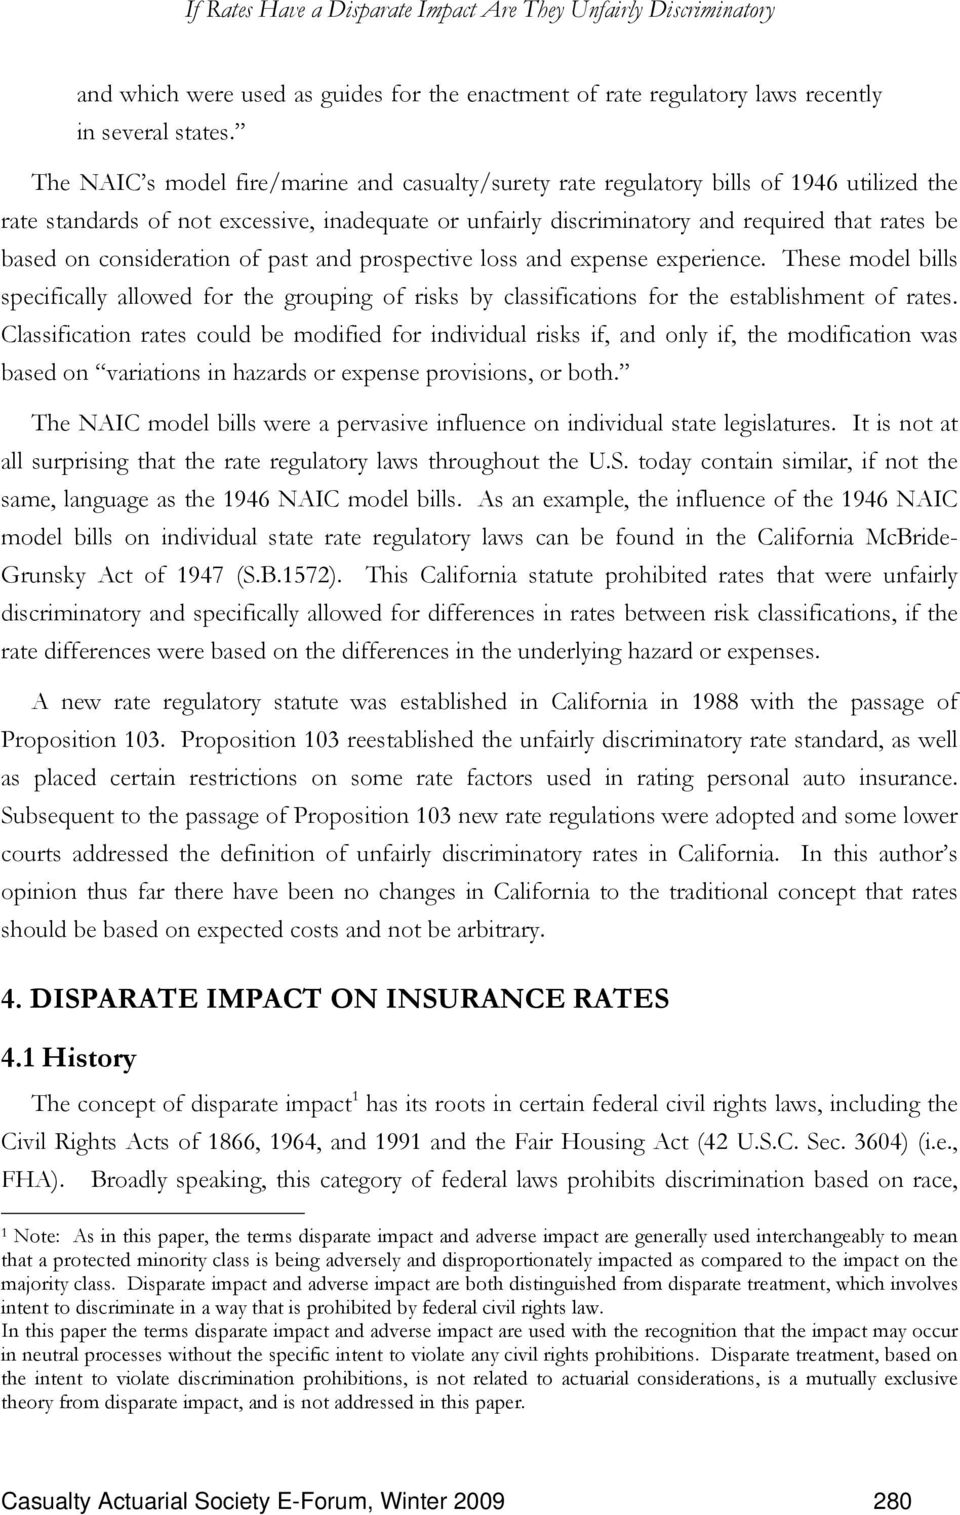 consideration of past and prospective loss and expense experience. These model bills specifically allowed for the grouping of risks by classifications for the establishment of rates.